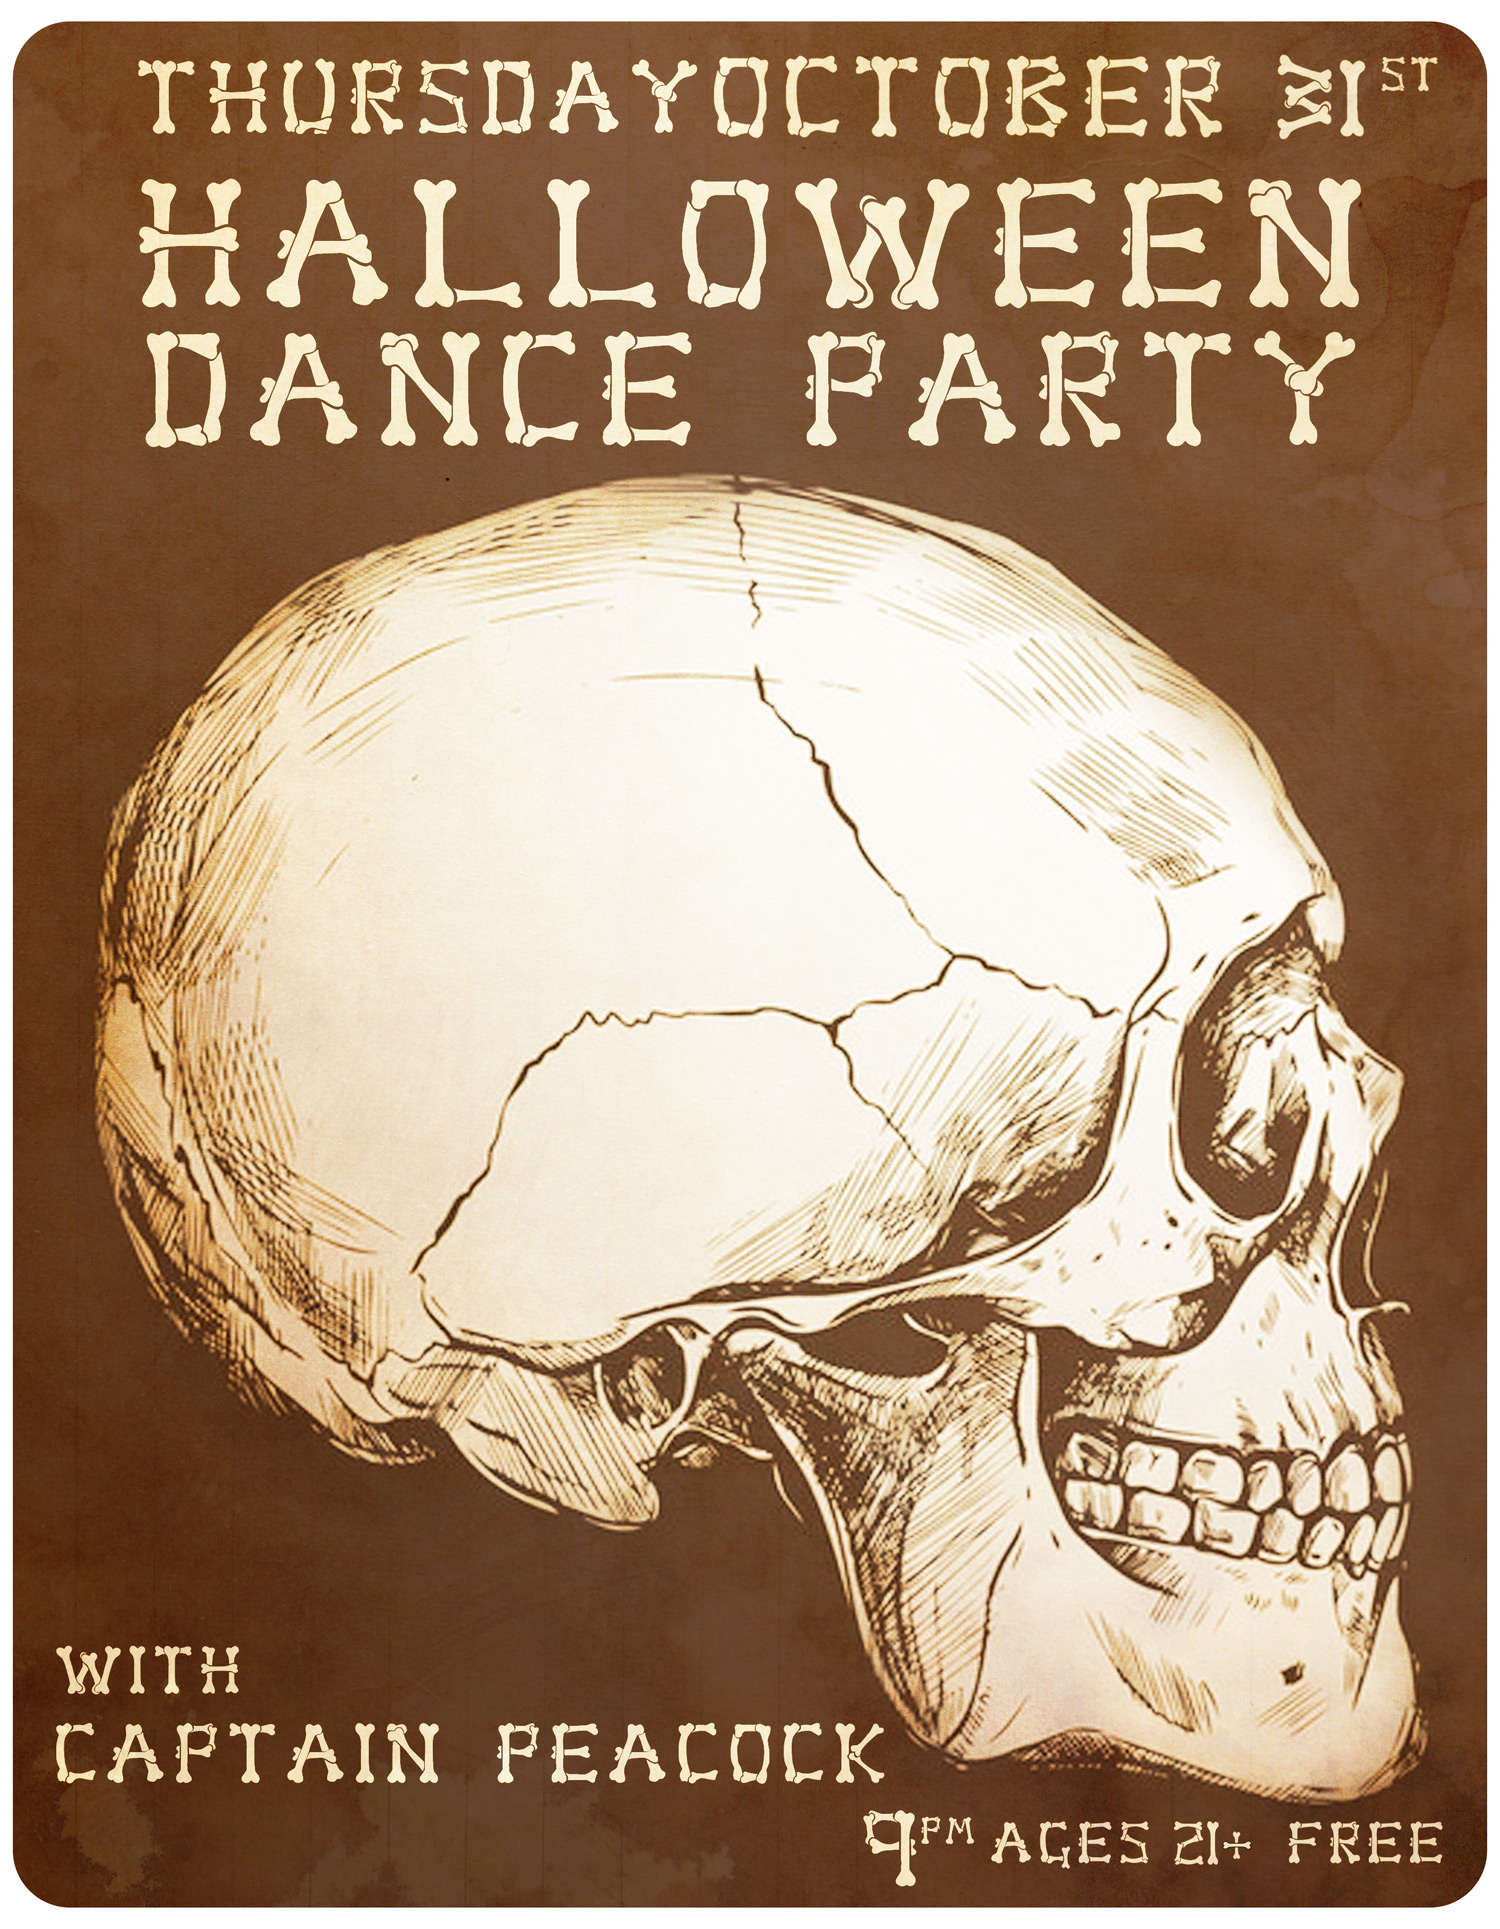 Halloween Dance Party!